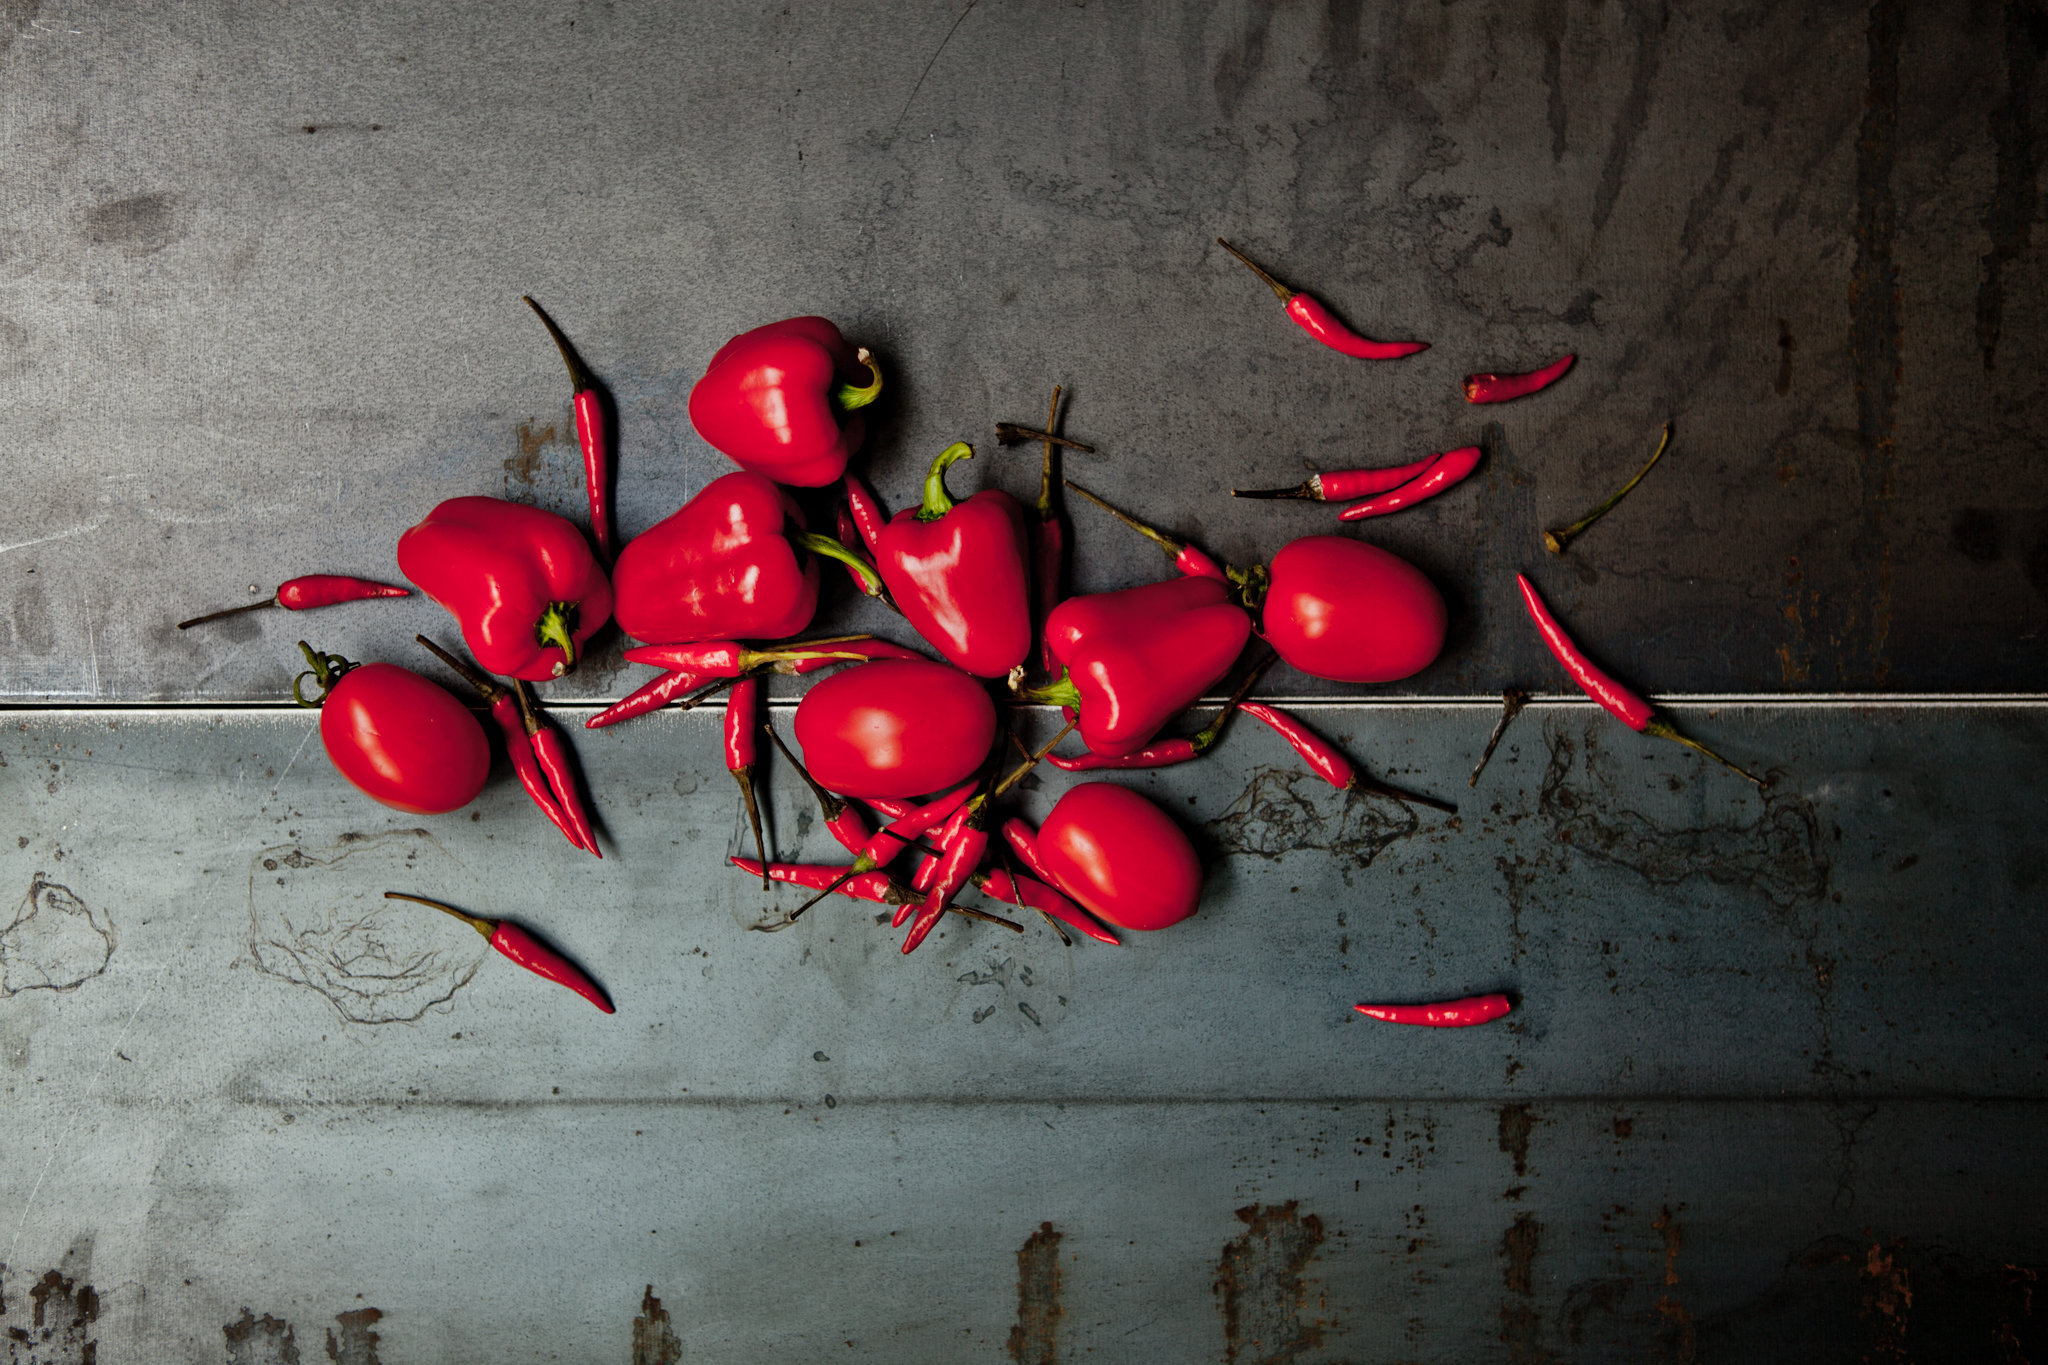 productshoot_01.jpg